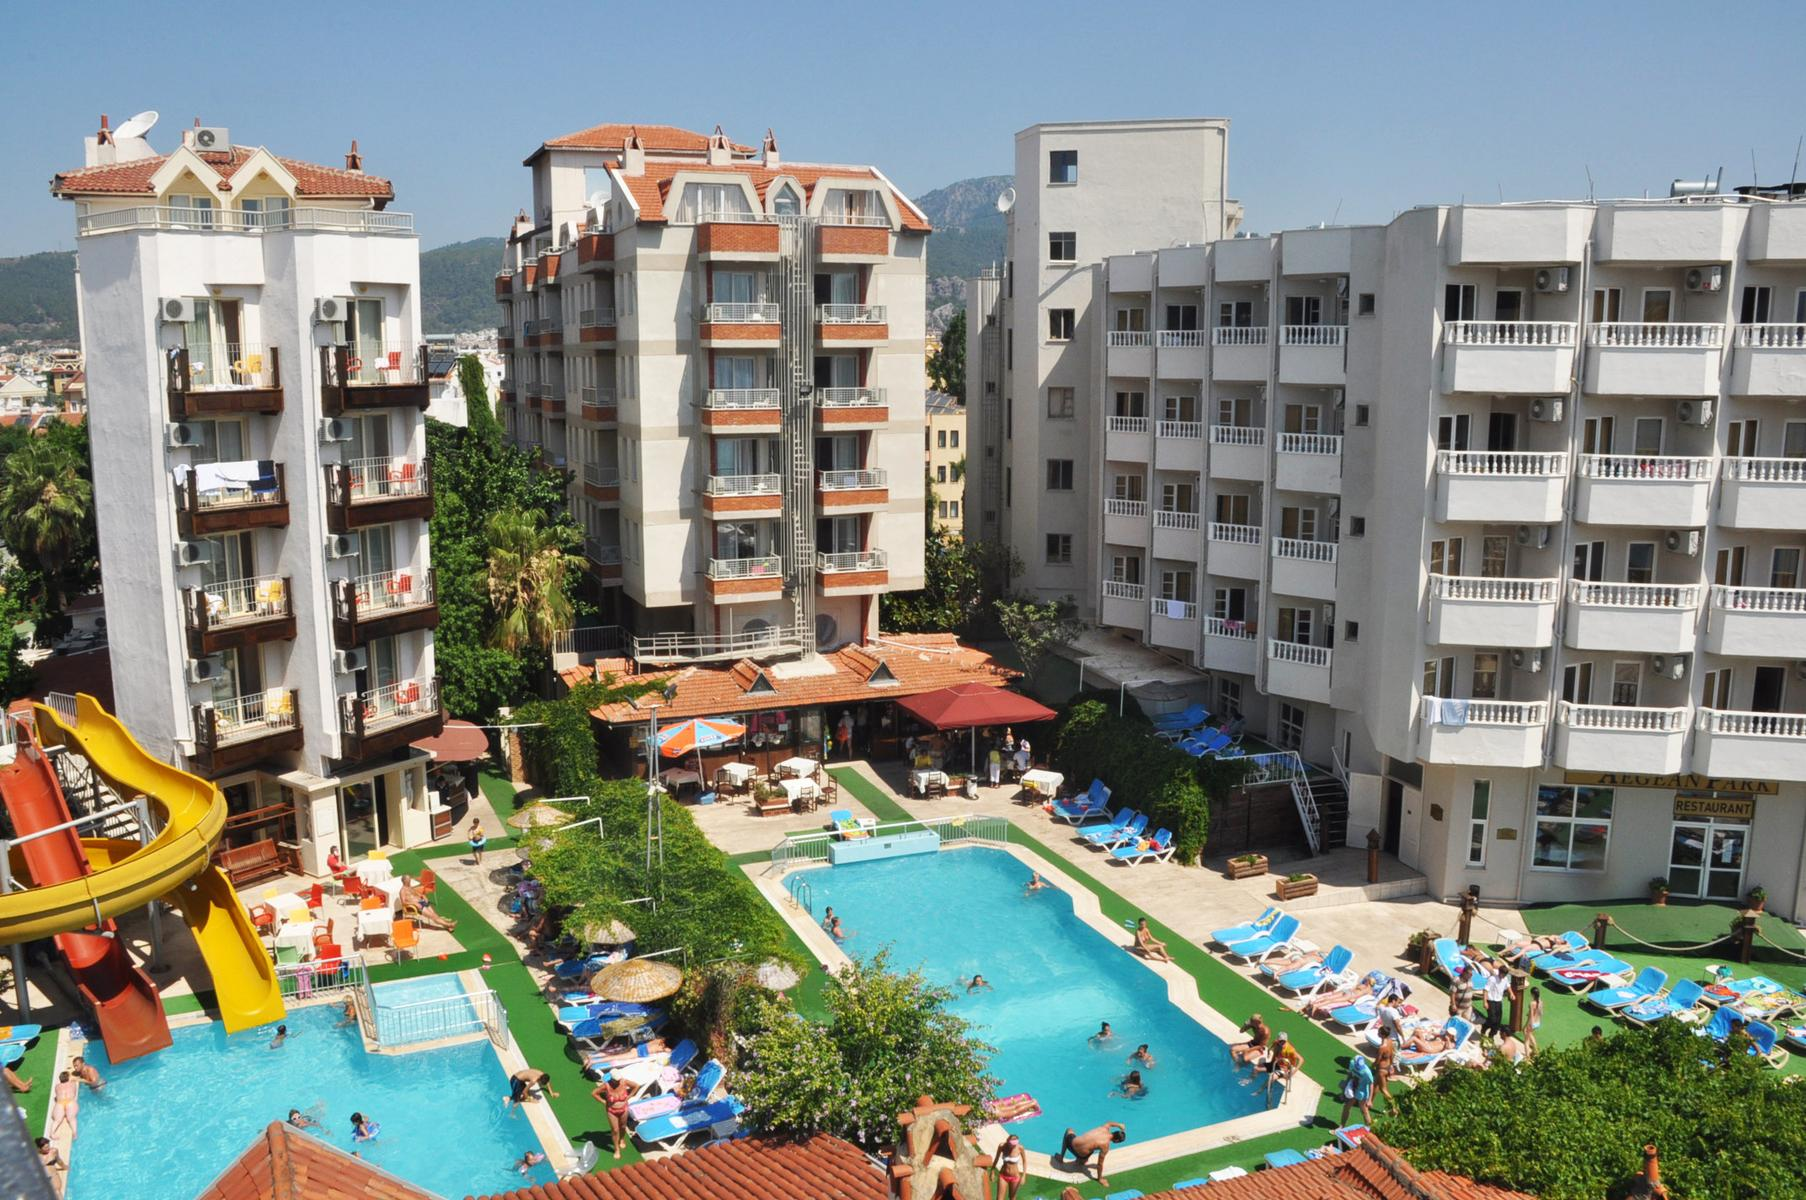 Aegean Park Hotel in Marmaris, Dalaman, Turkey